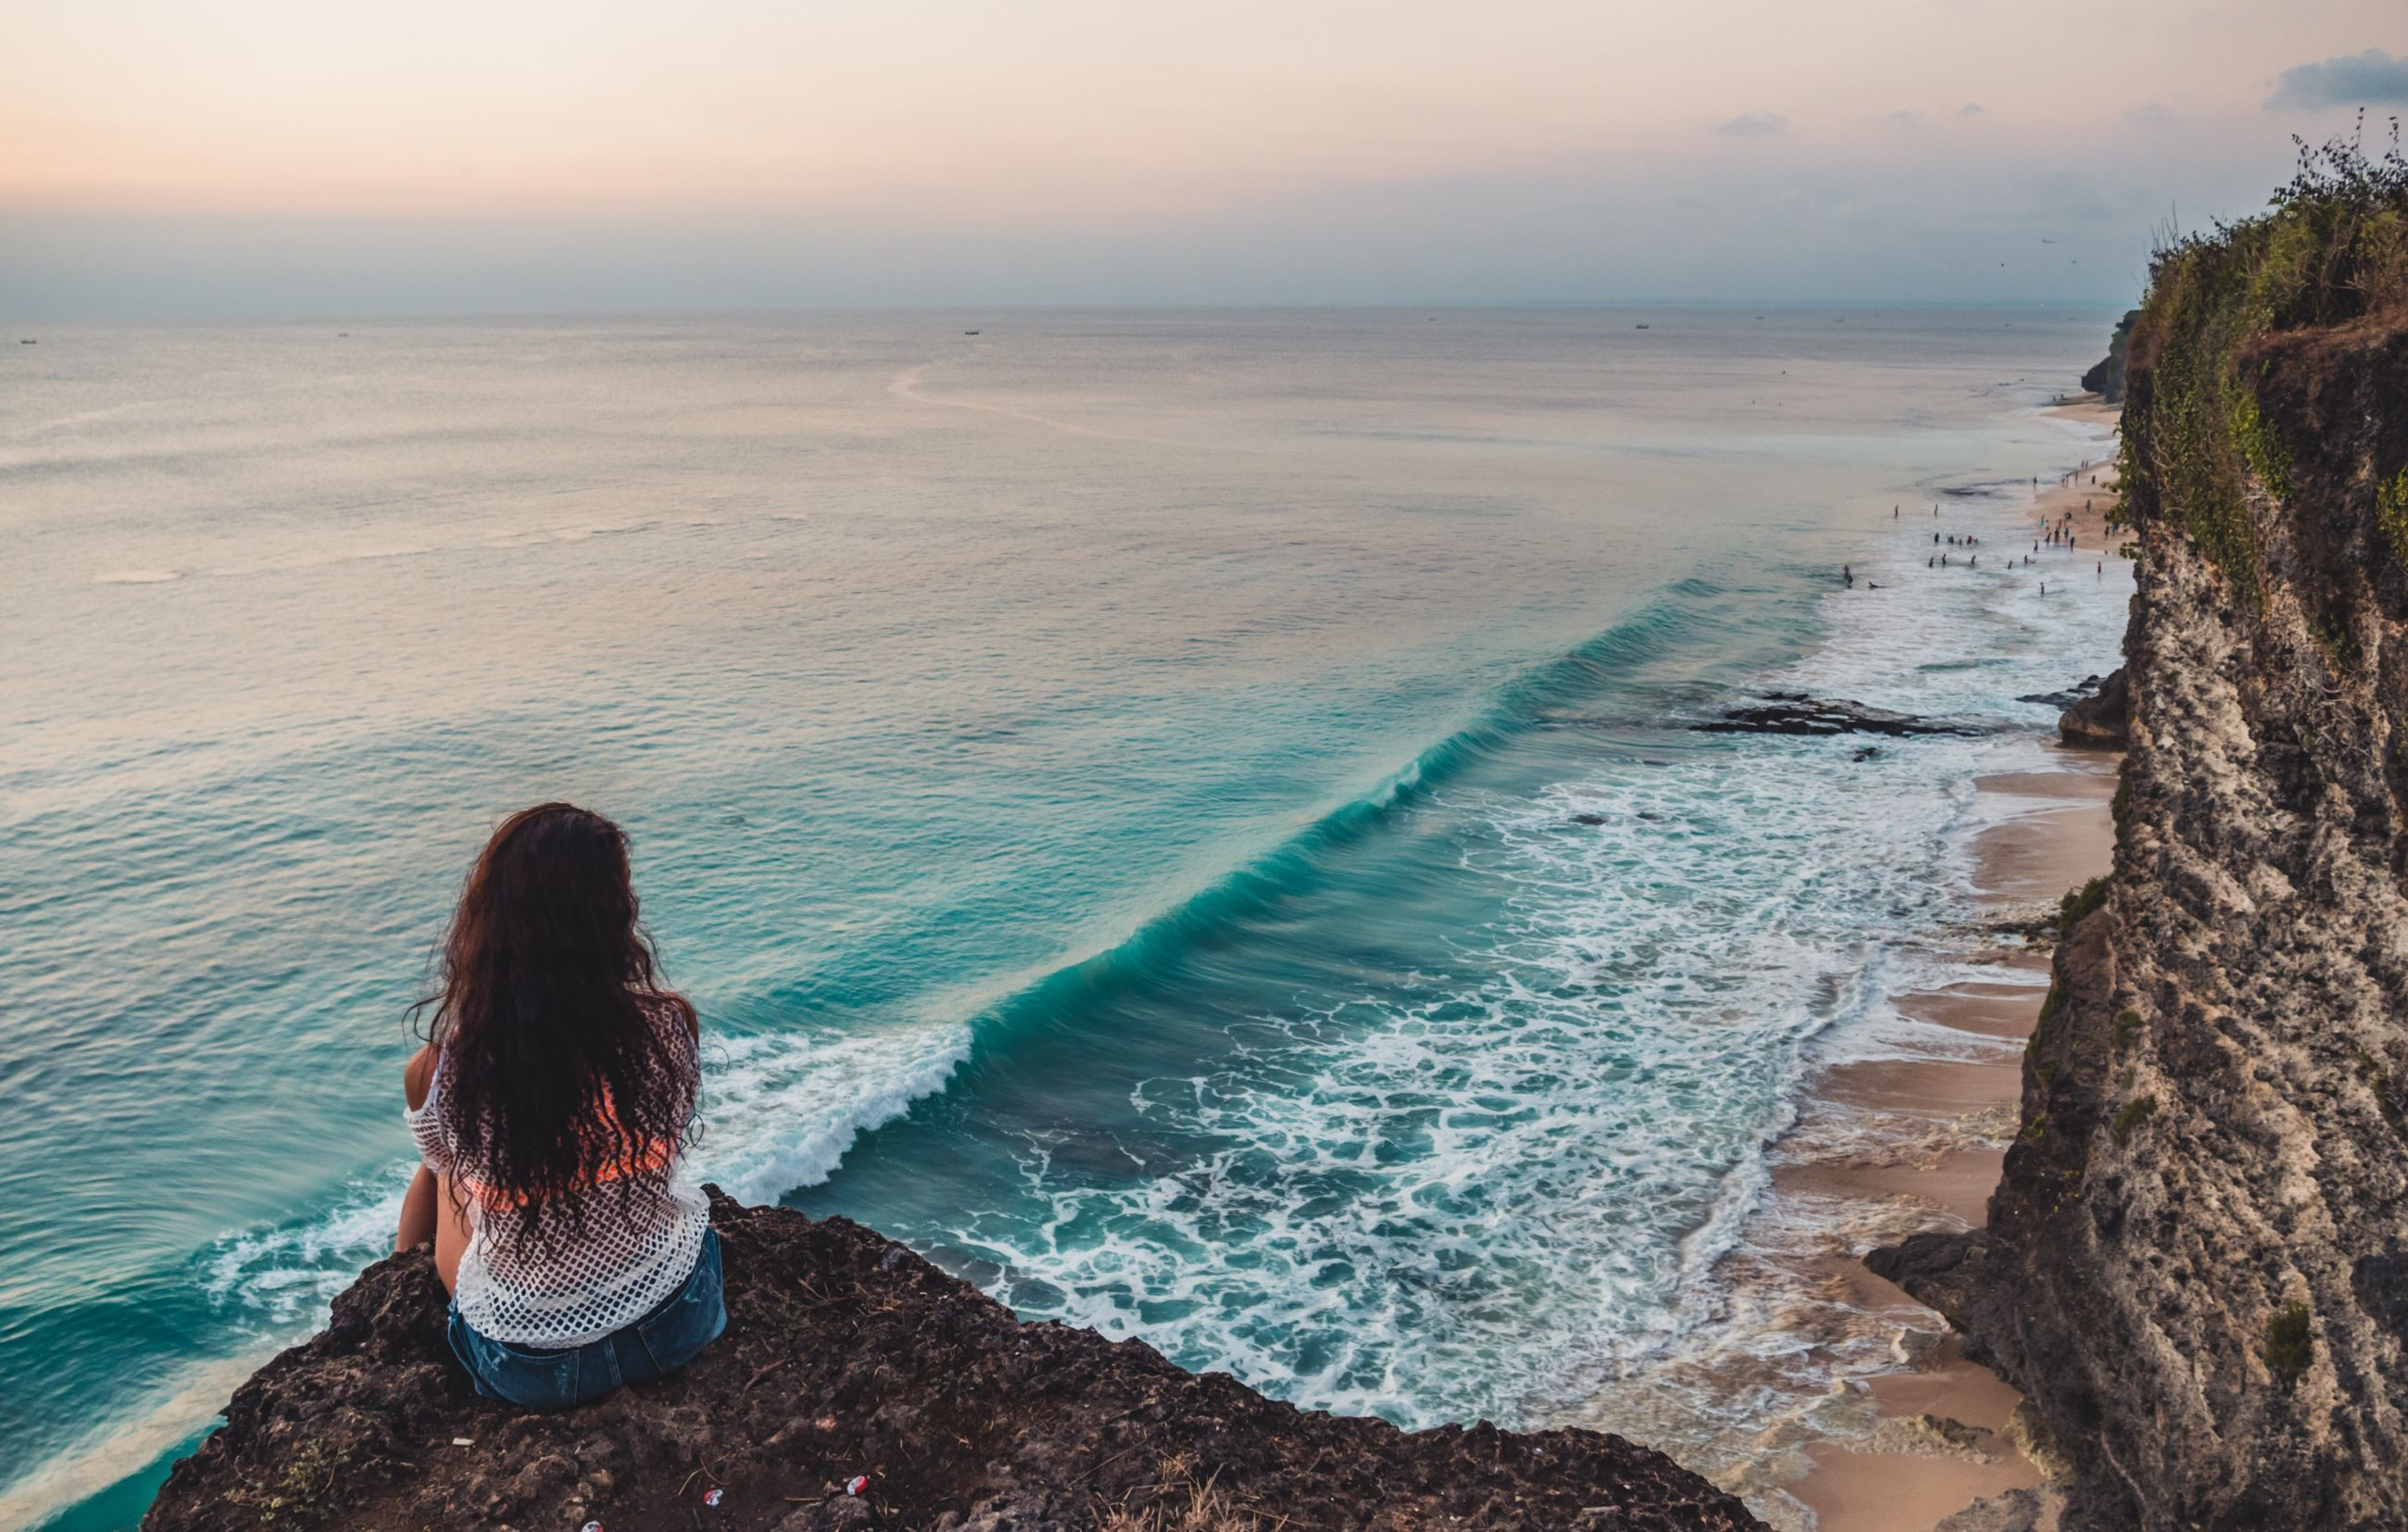 sea, water, scenics - nature, beauty in nature, real people, one person, sky, leisure activity, lifestyles, land, rear view, women, beach, horizon, horizon over water, sitting, hair, hairstyle, adult, outdoors, looking at view